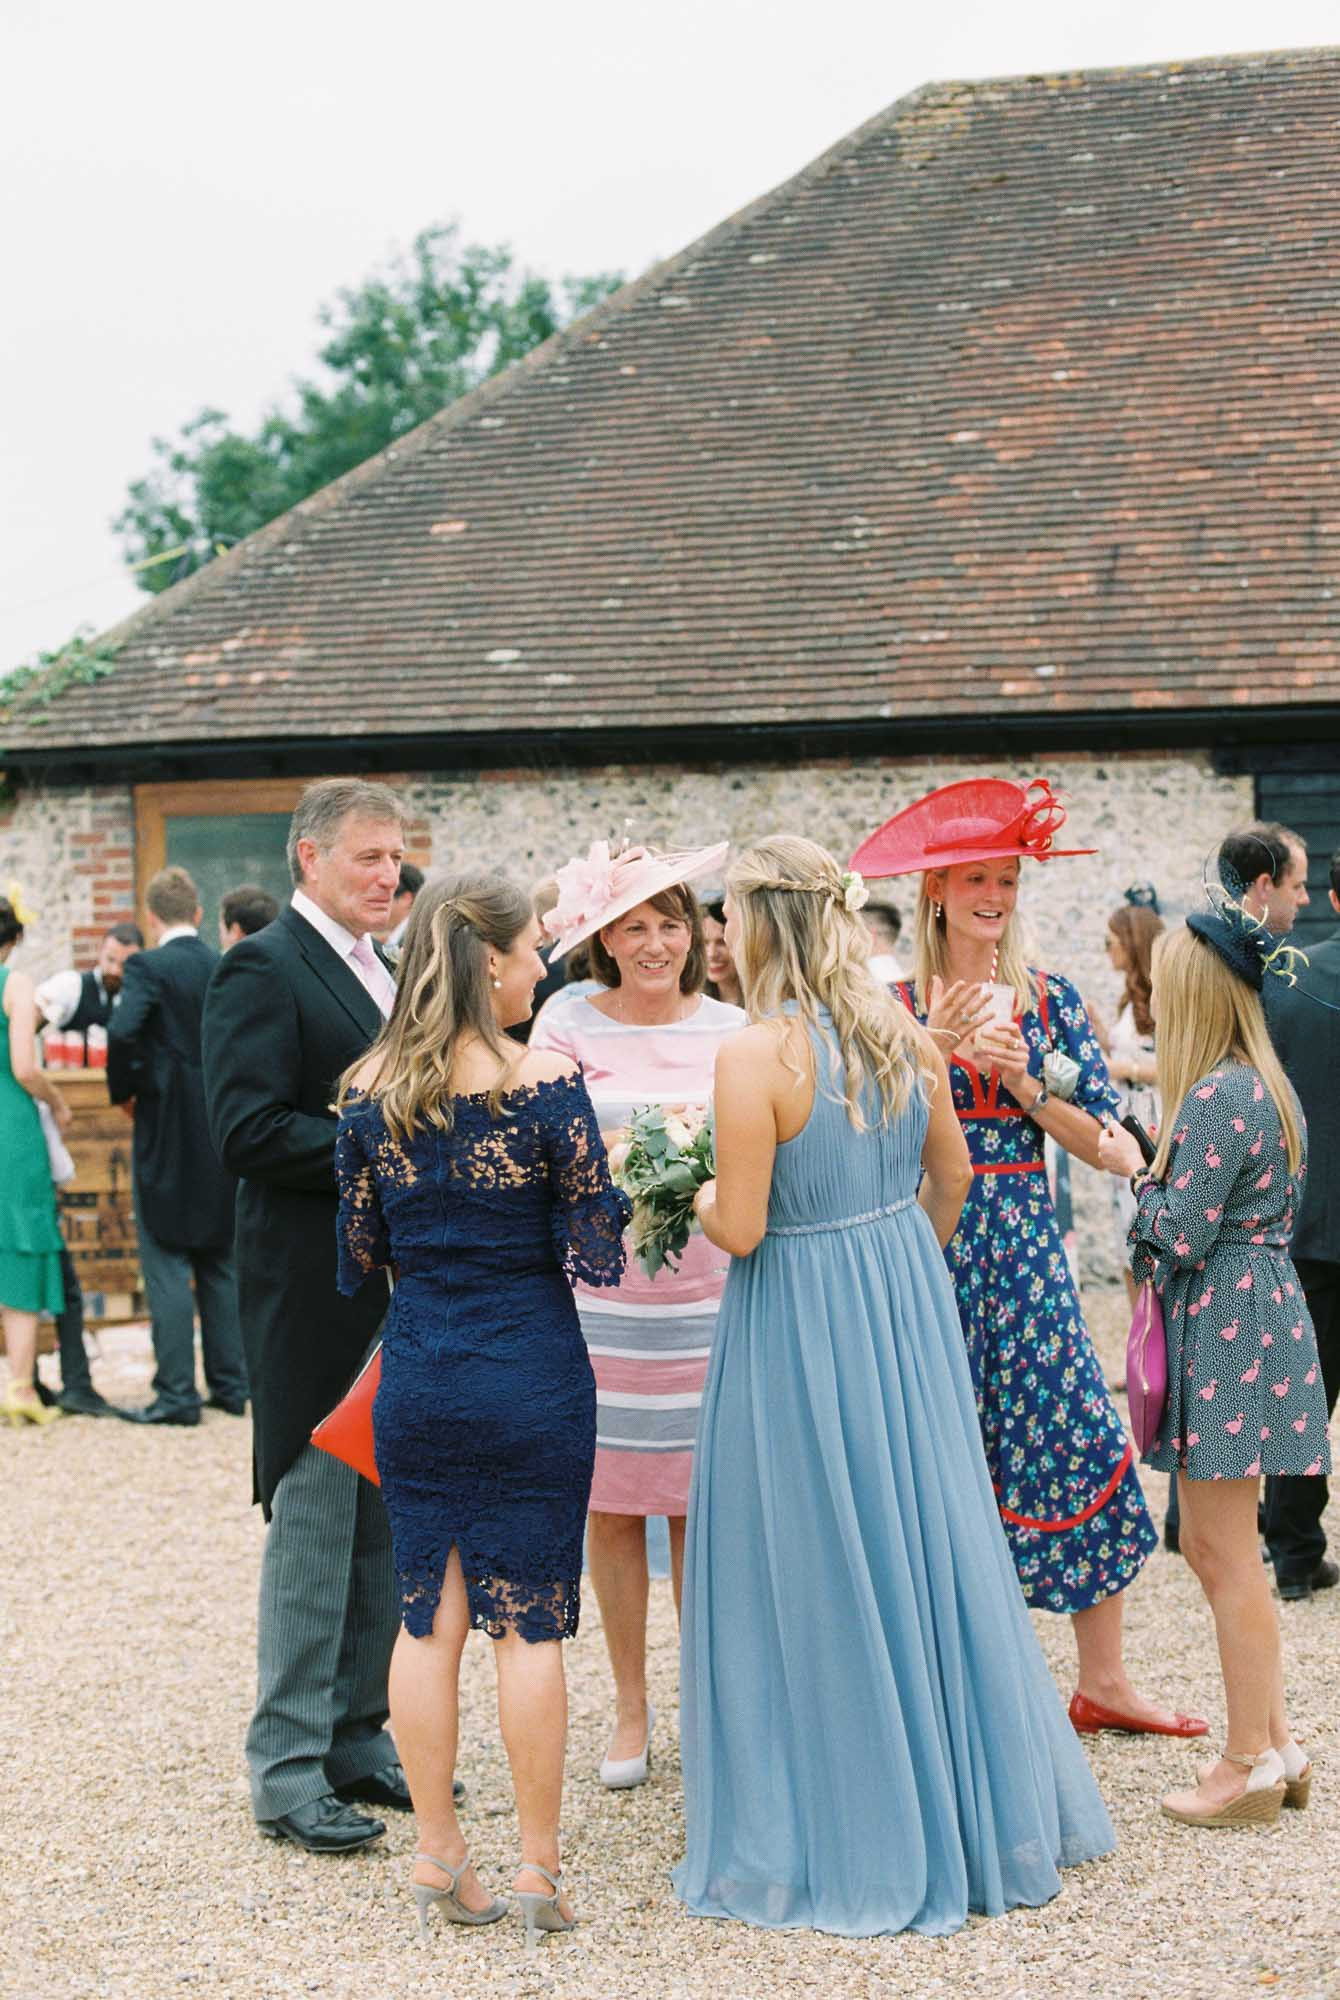 Wedding guests talking in a group at Sussex Garden Wedding